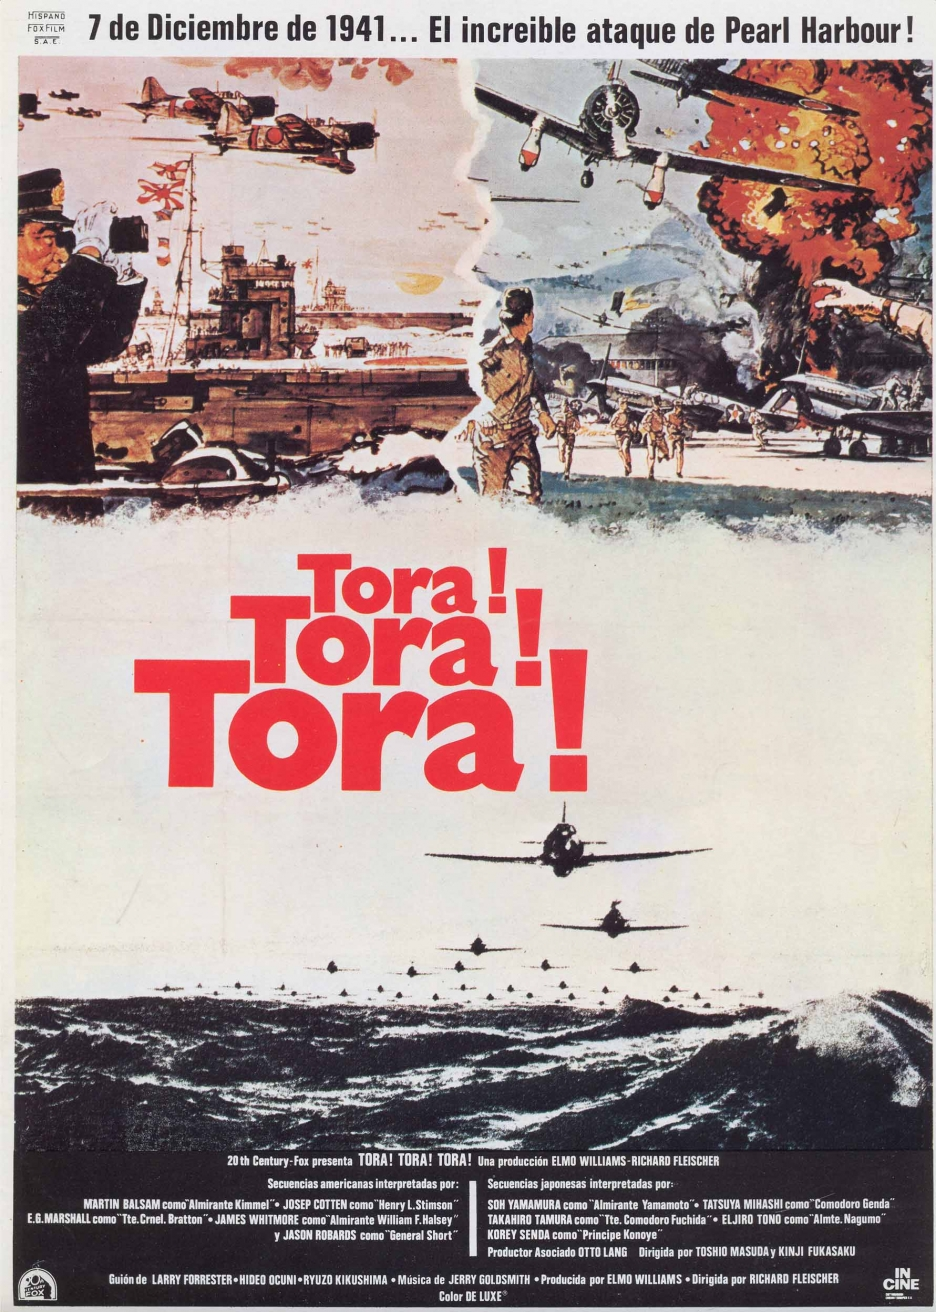 Retrospective Review: Tora! Tora! Tora!